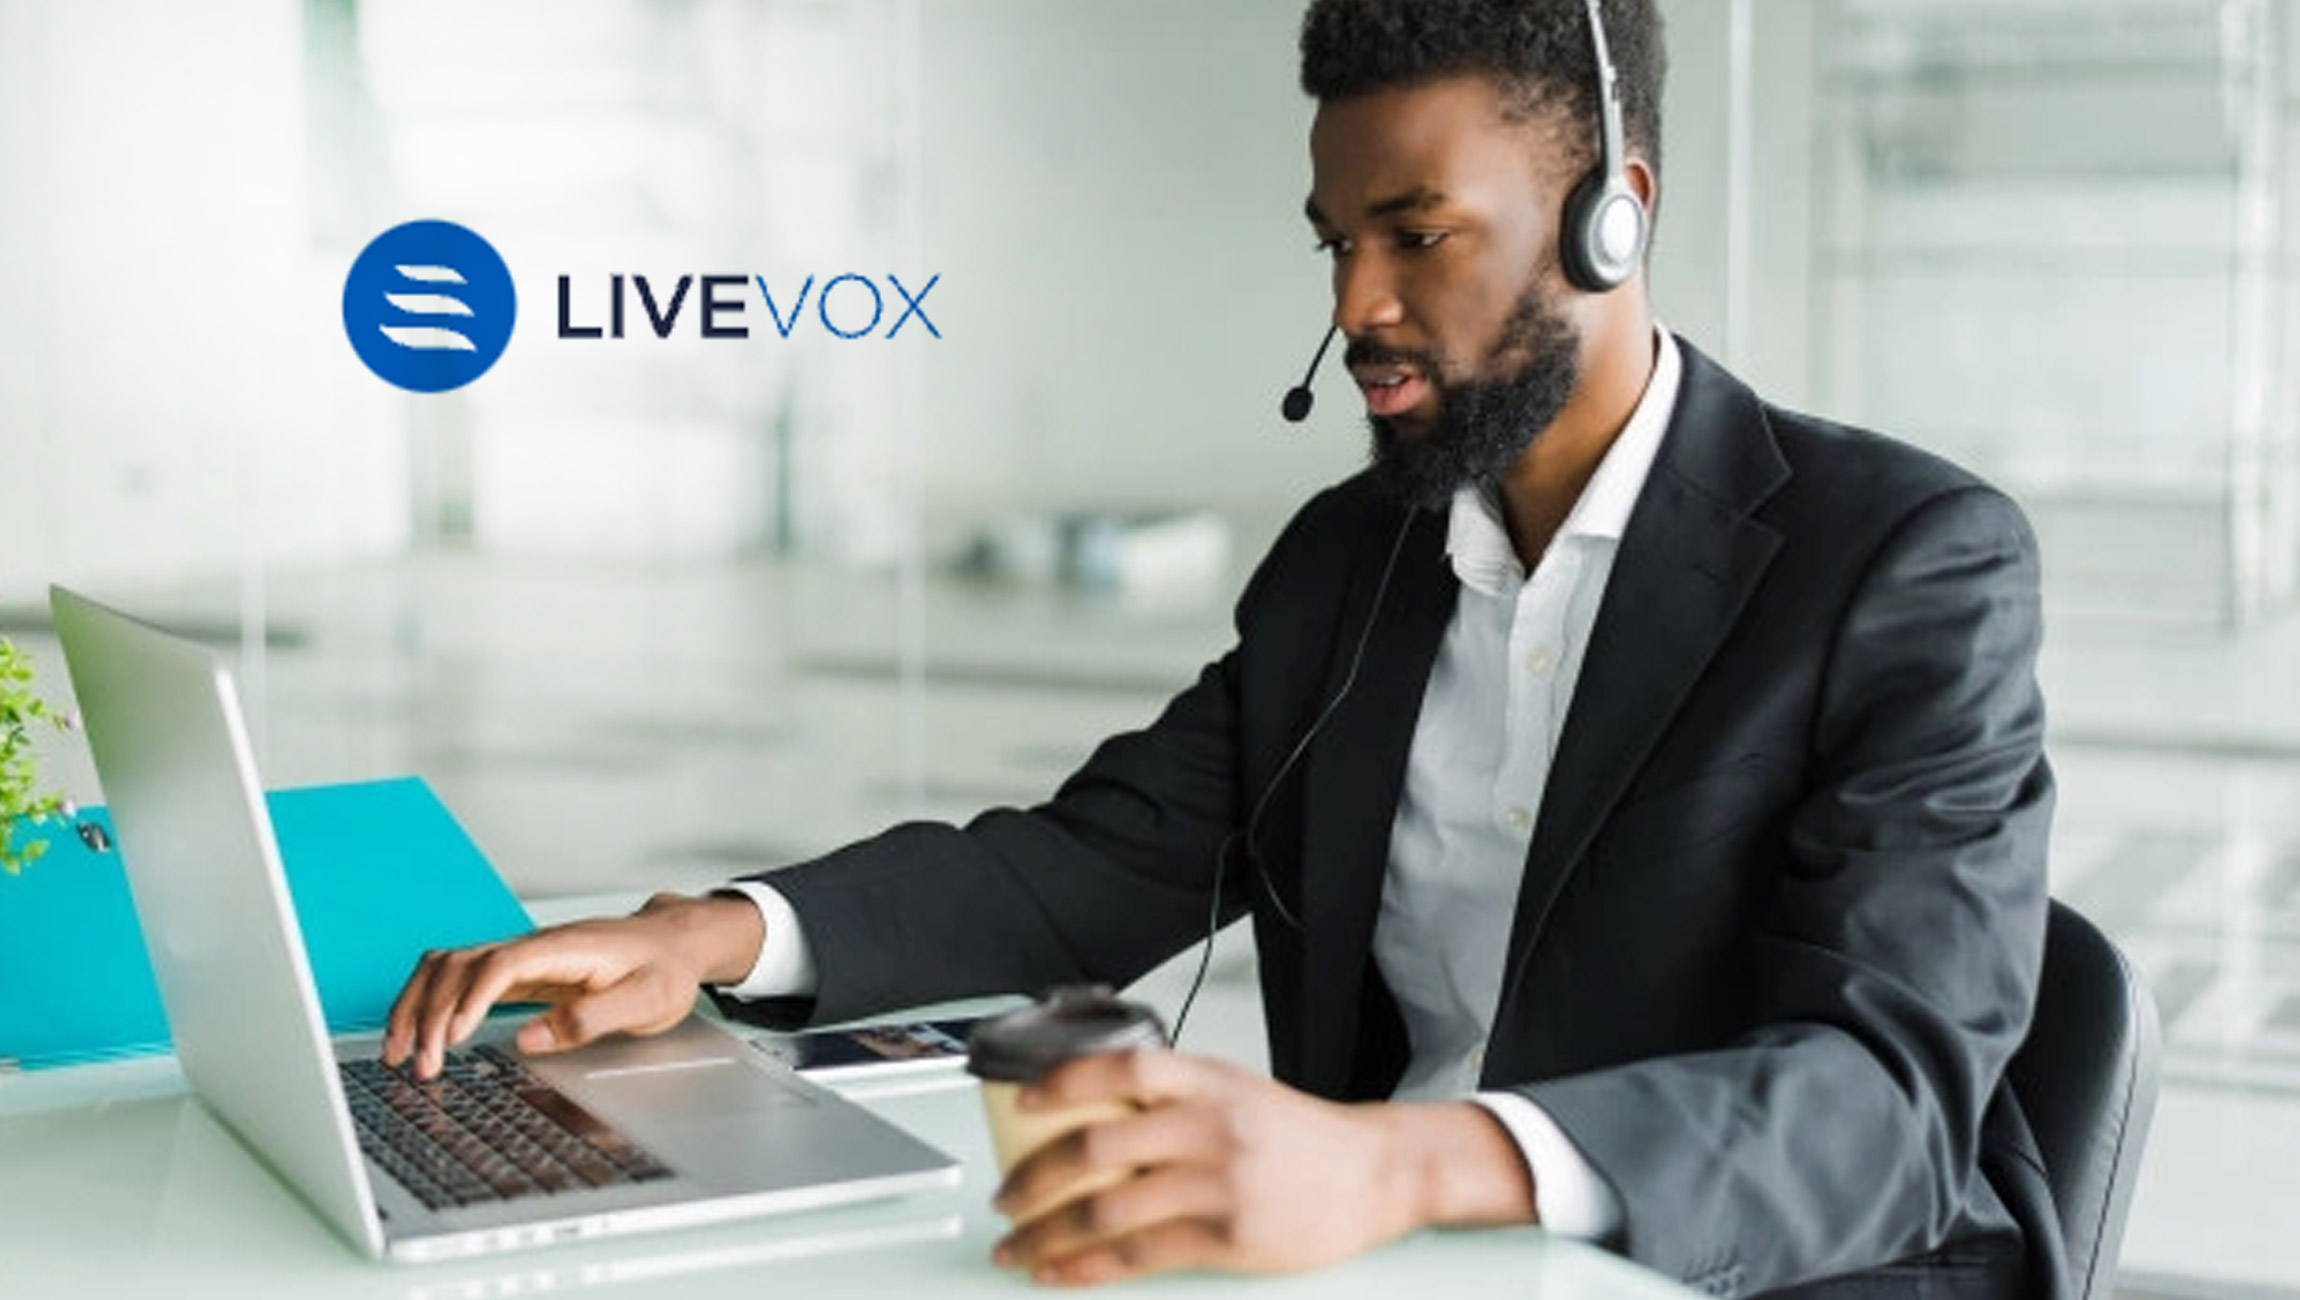 LiveVox Launches SmartStart Program, Powering Speed-to-Value for Contact Centers